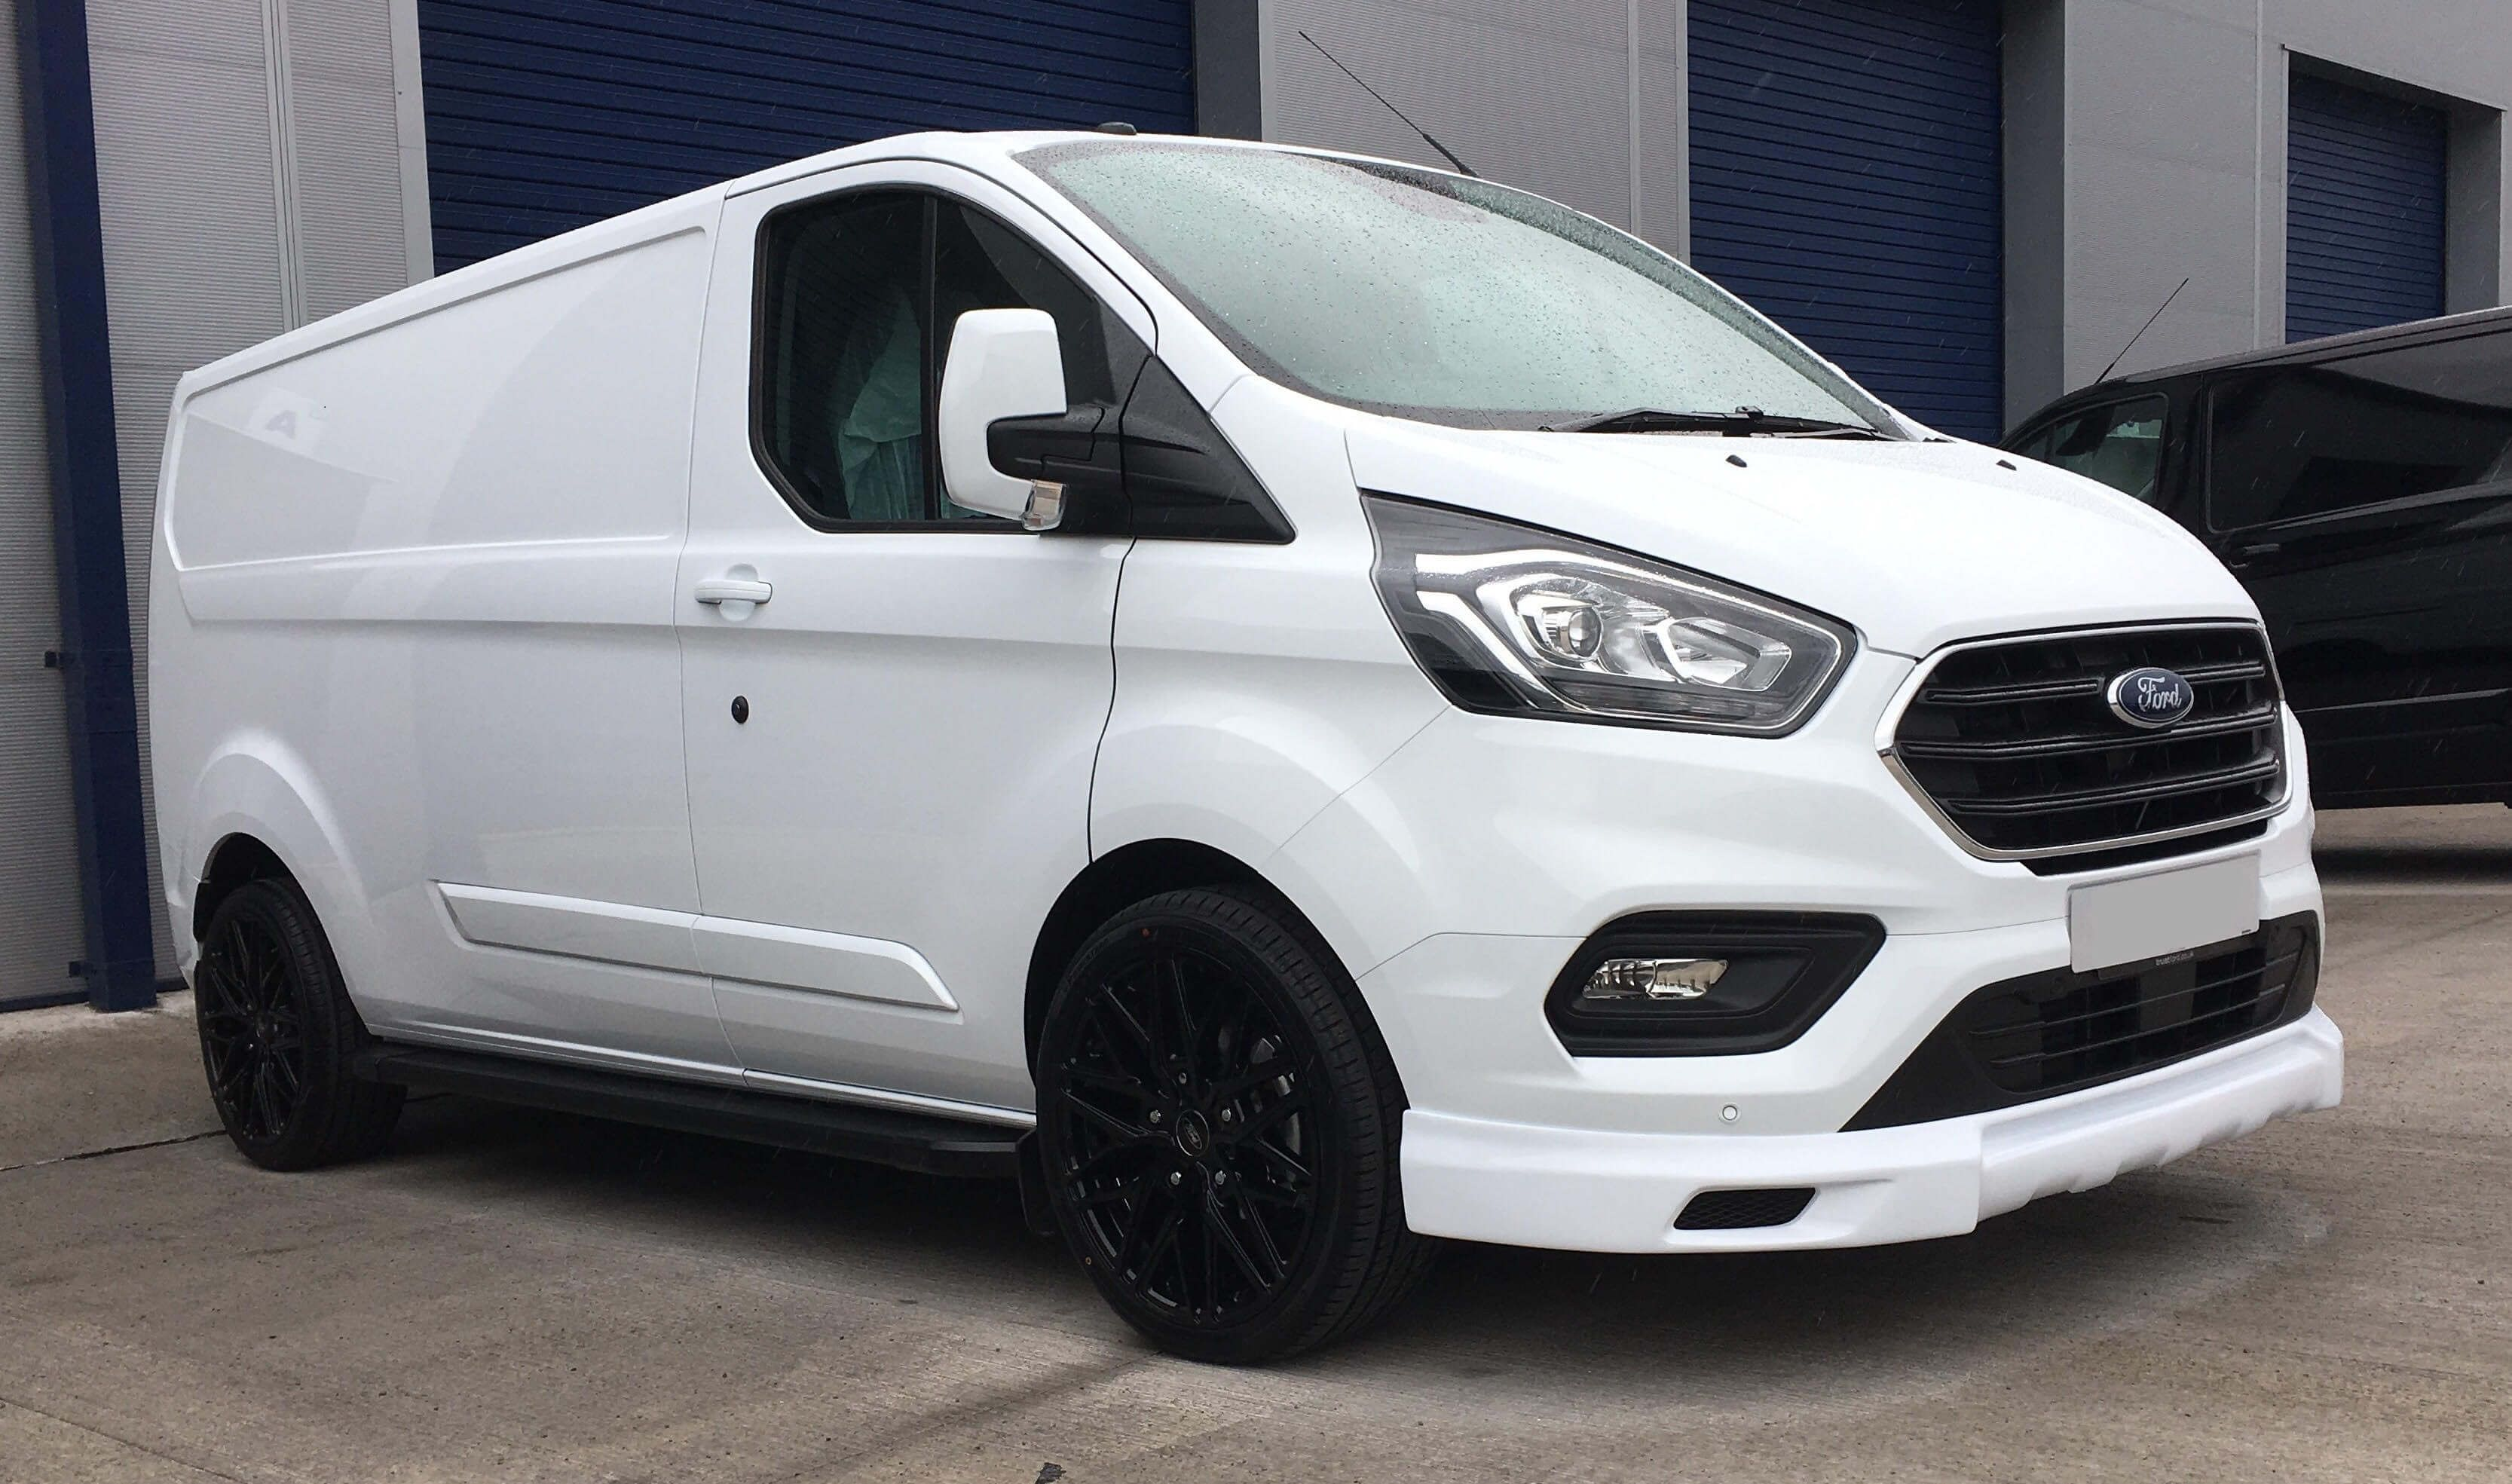 New Face Lift Model Ford Transit Custom Limited Q Sport Upgraded 20 Alloy Wheels Spoilers Side Steps Very High Specification Transit Custom Air Con Blue